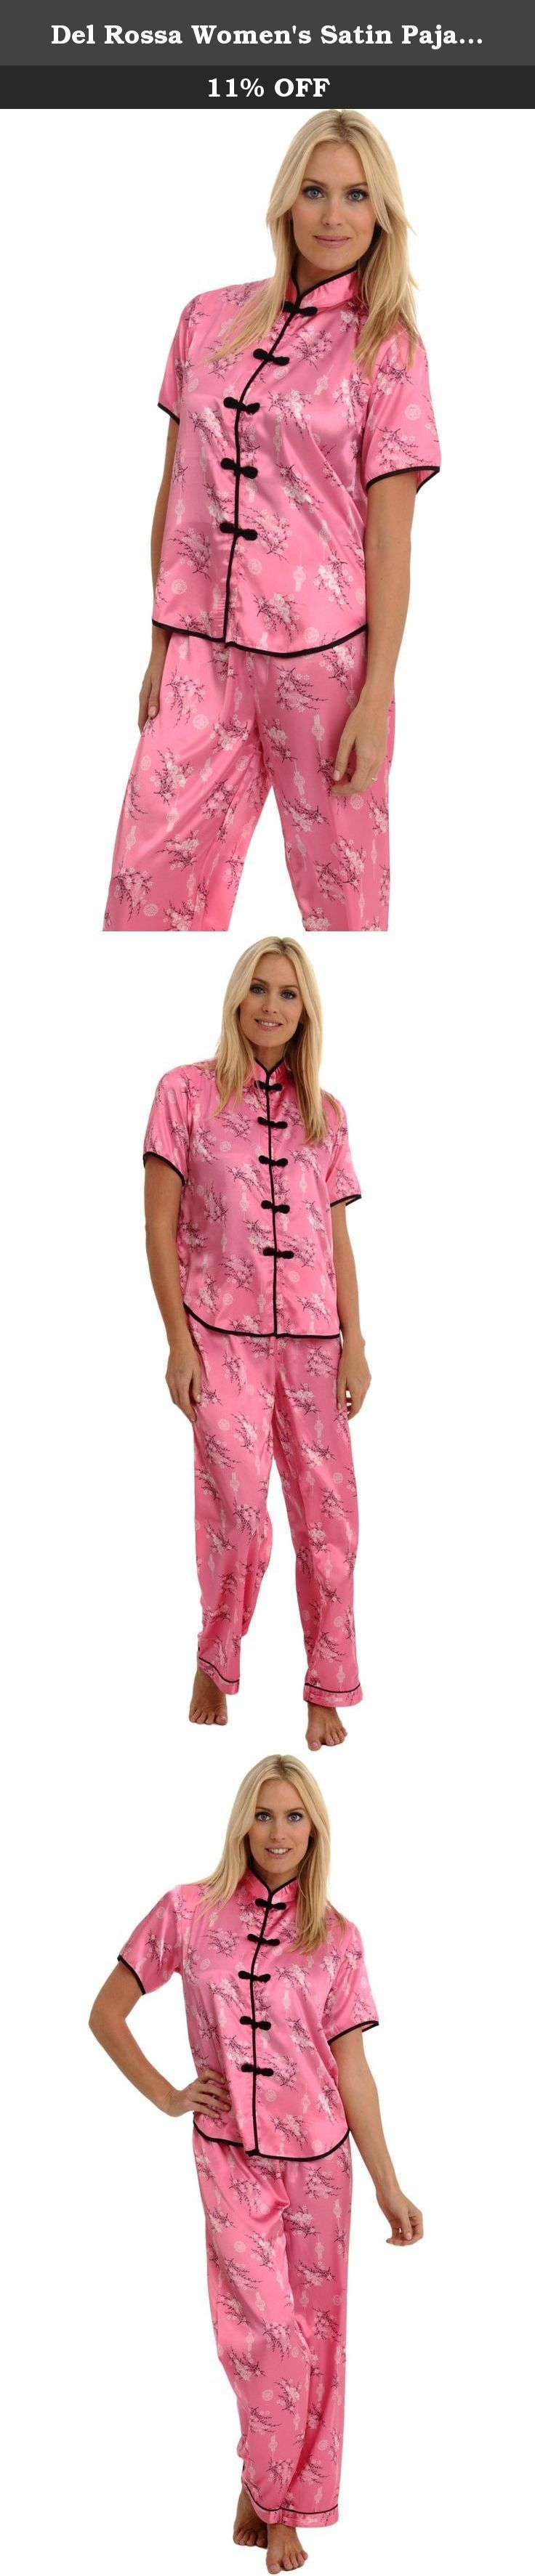 Del Rossa Women's Satin Pajamas, Chinese Inspired Pj Set, Medium Pink (A0728PNKMD). This women's satin pajama set from Alexander Del Rossa is comfortable, durable, and classy. Made from premium 100% polyester satin fabric, this women's pj set is cool and easy on the skin. Designed with you in mind, these classic ladies pajamas are perfect for lounging around the house - even when guests are present. Rich in features, we trust that this satin pajama set for women will not disappoint…